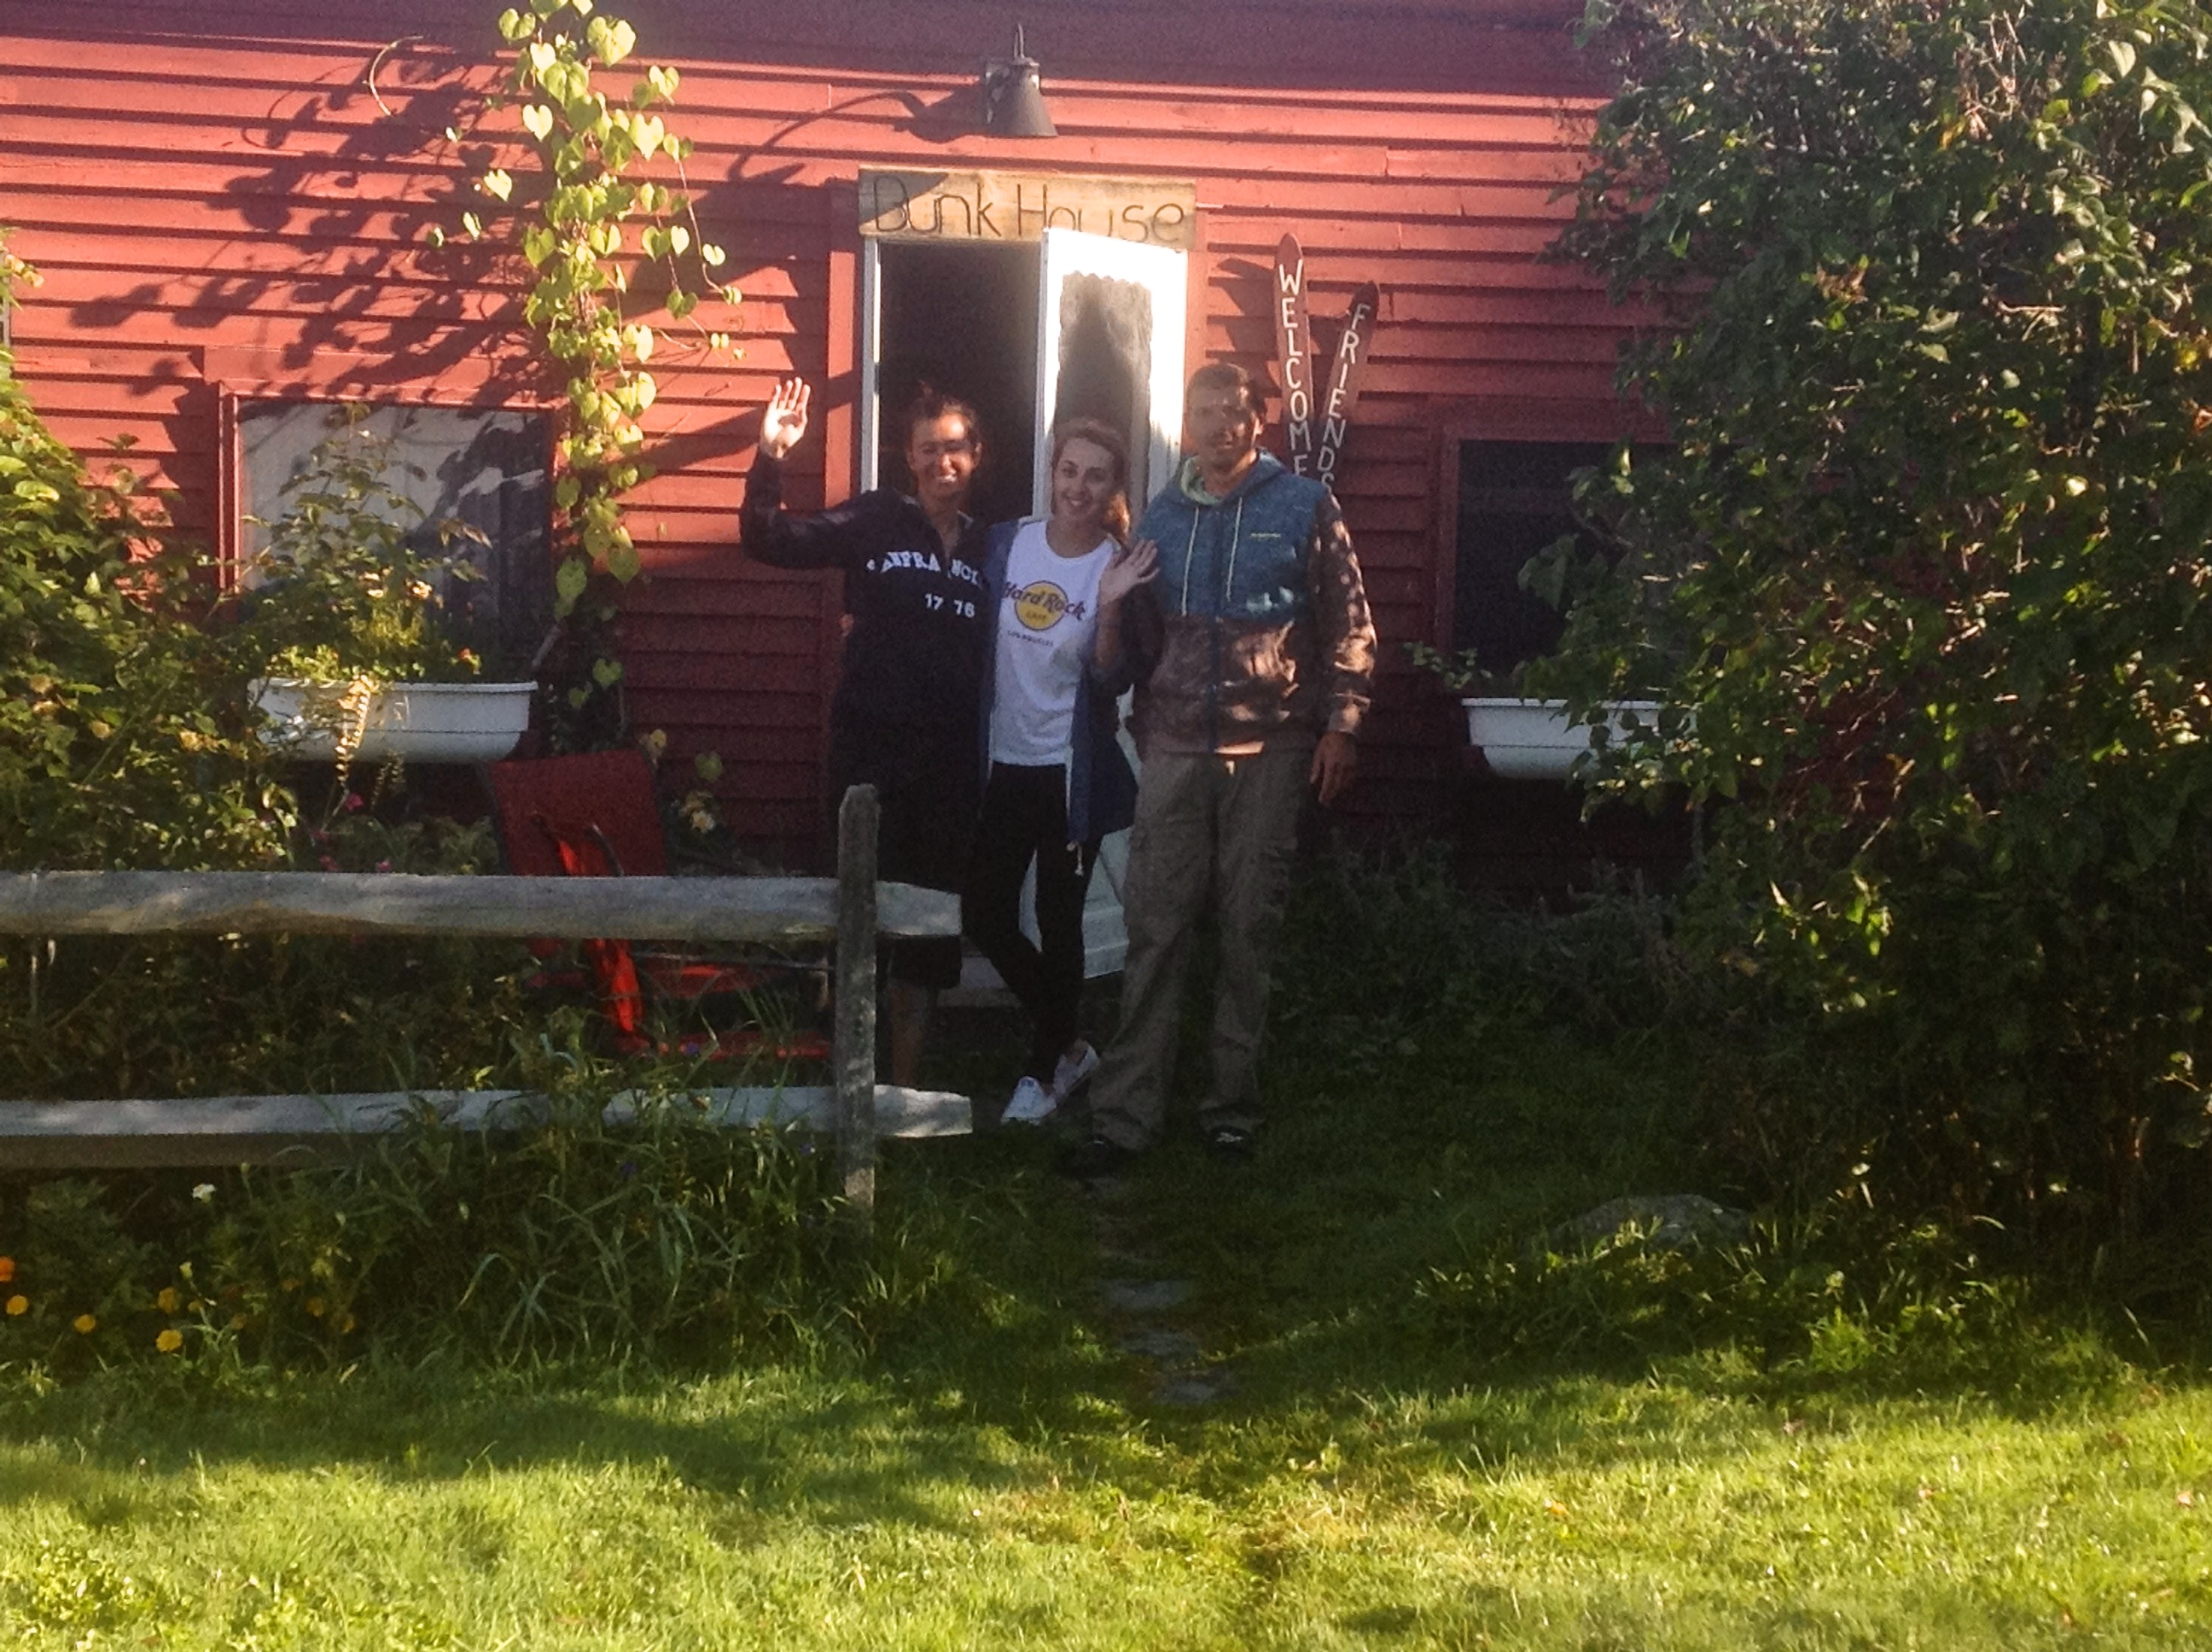 Slovakian visitors at the Bunk House